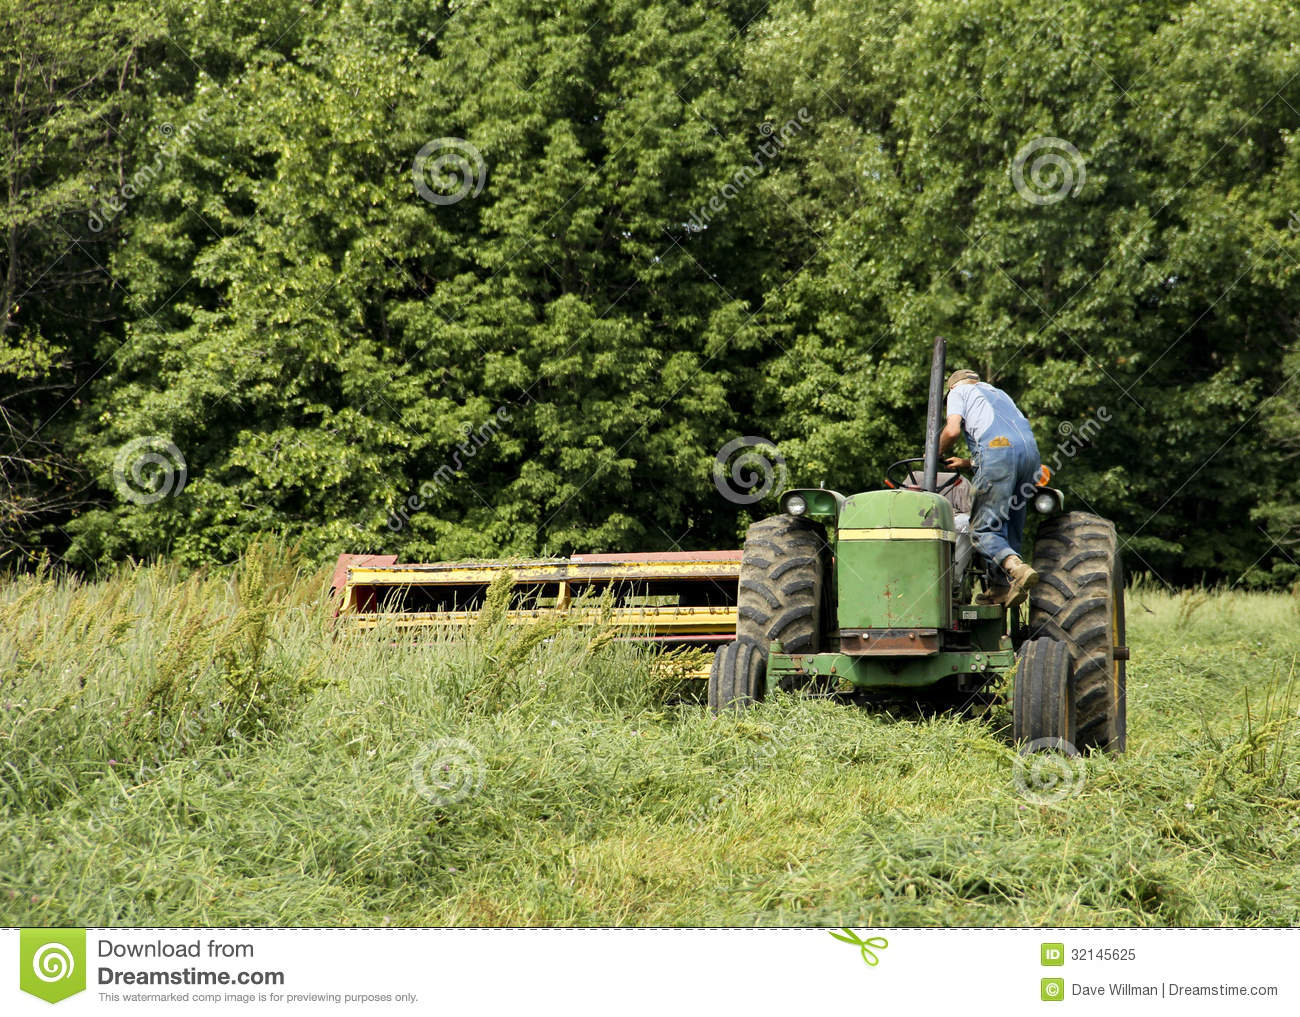 Hay Farmer Tractor Cartoon : Farmer cutting hay royalty free stock photo image